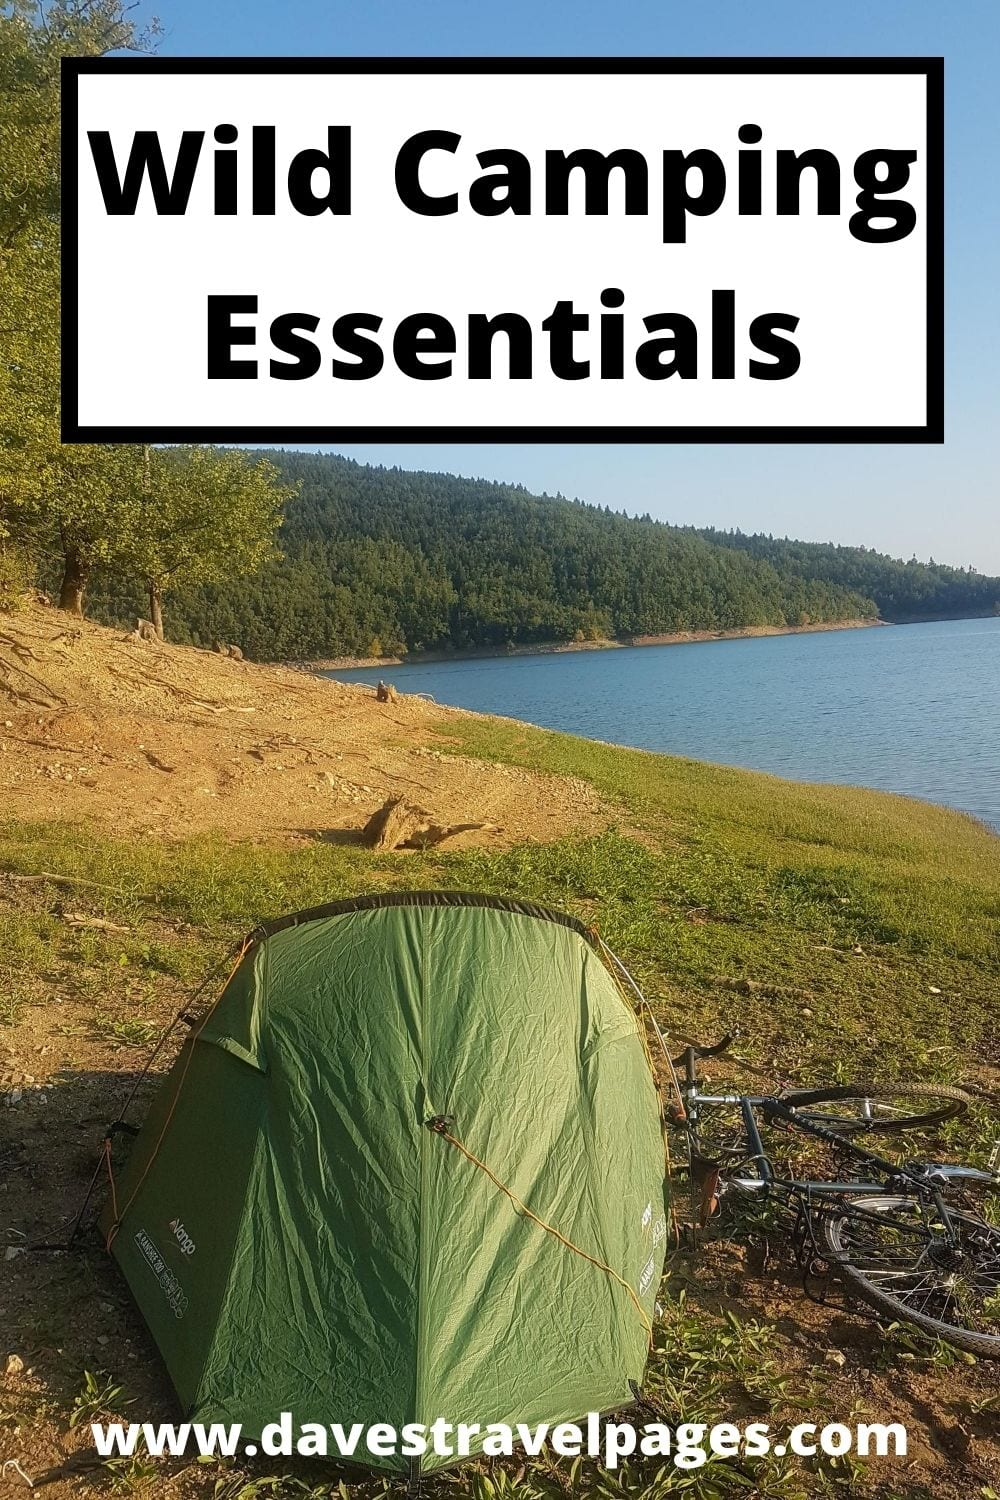 Wild Camping Essentials - In this beginners guide to wild camping essentials, I go over the basic kit needed for your first free night under the stars.